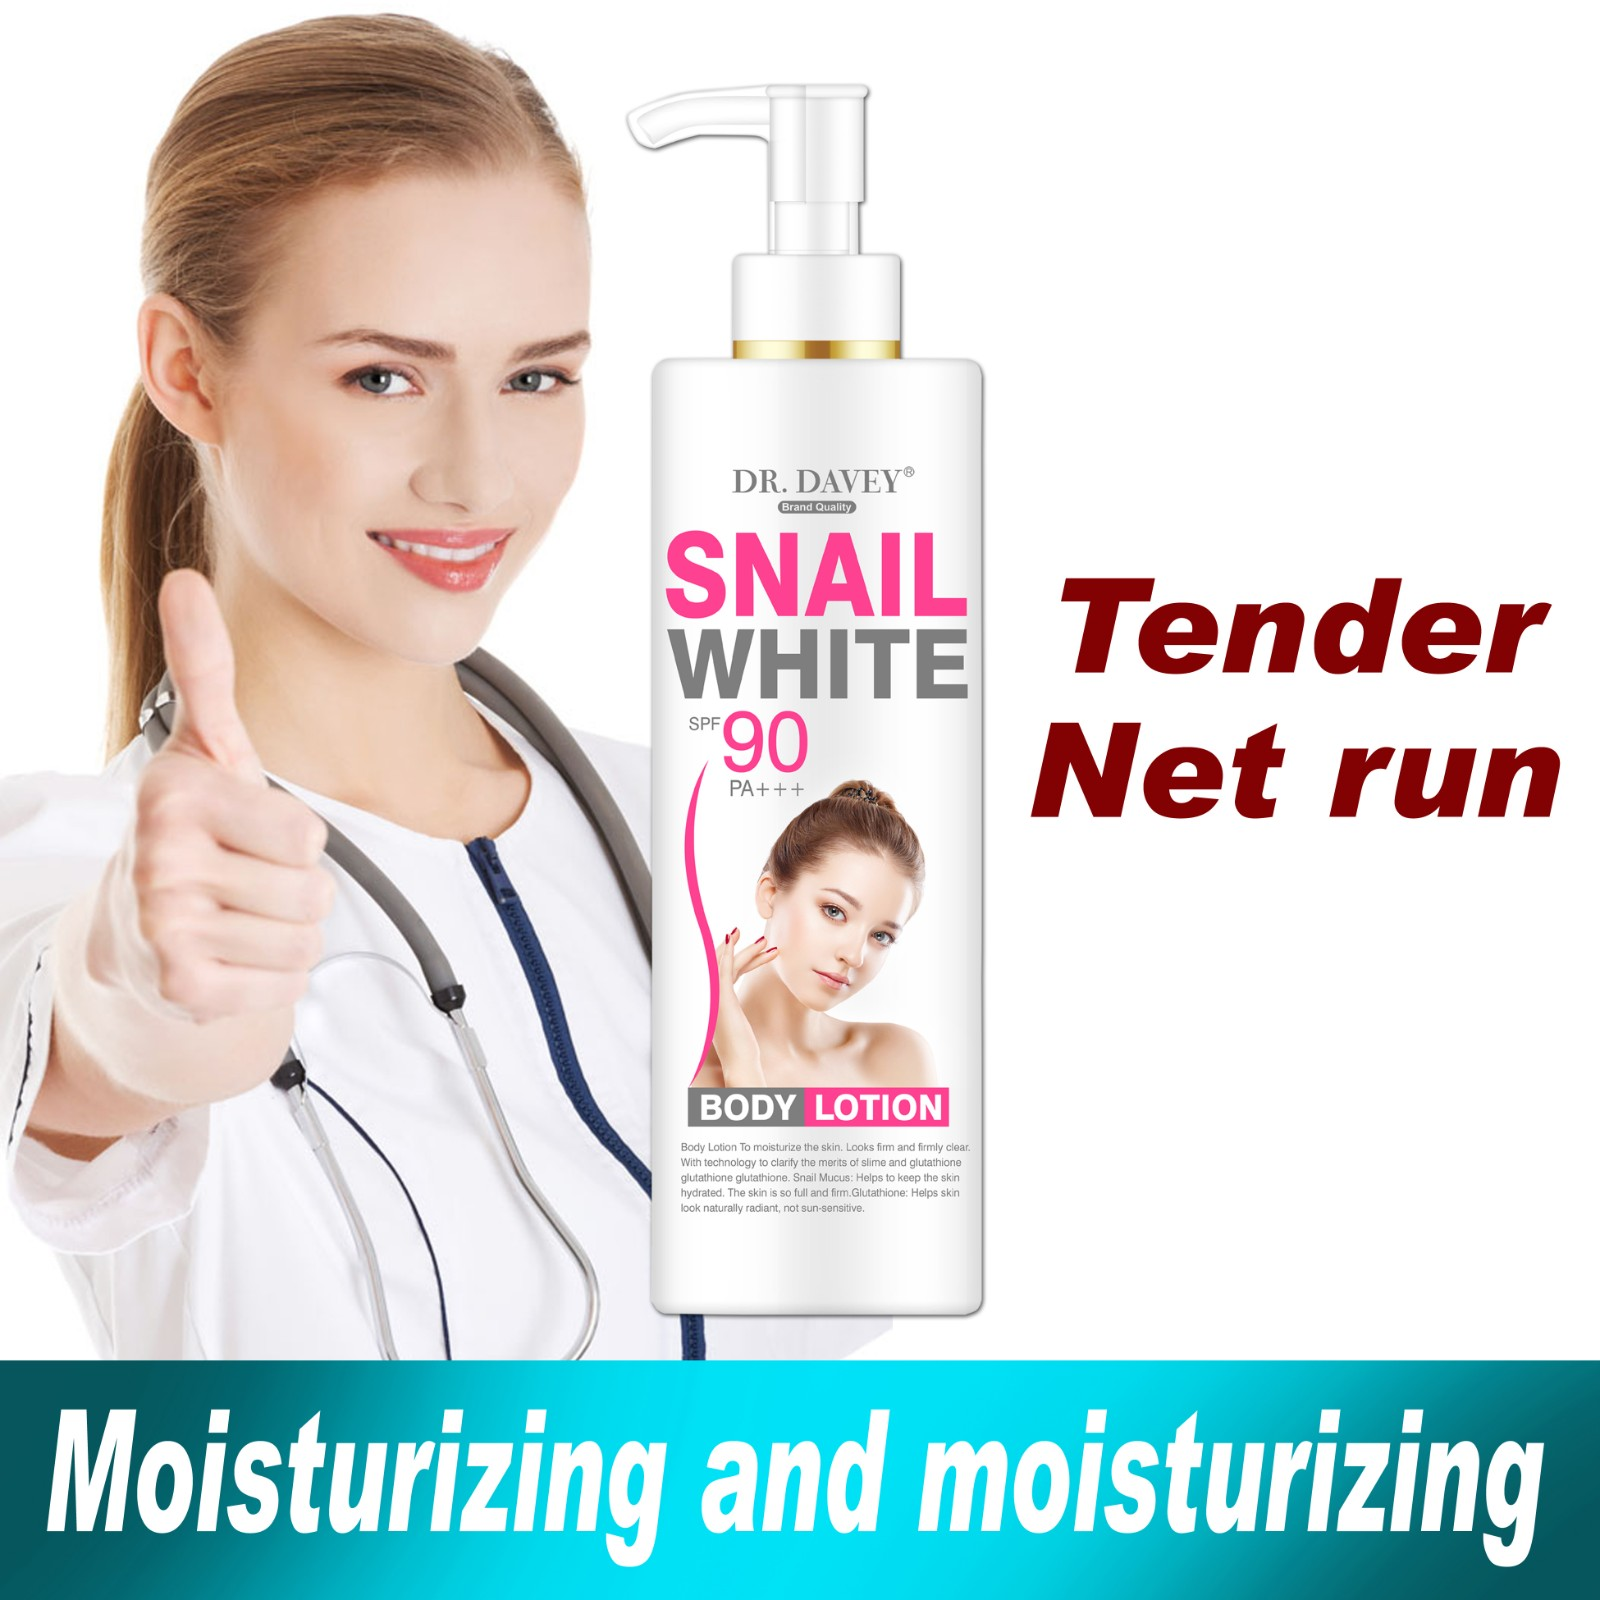 Snail White Body Lotion